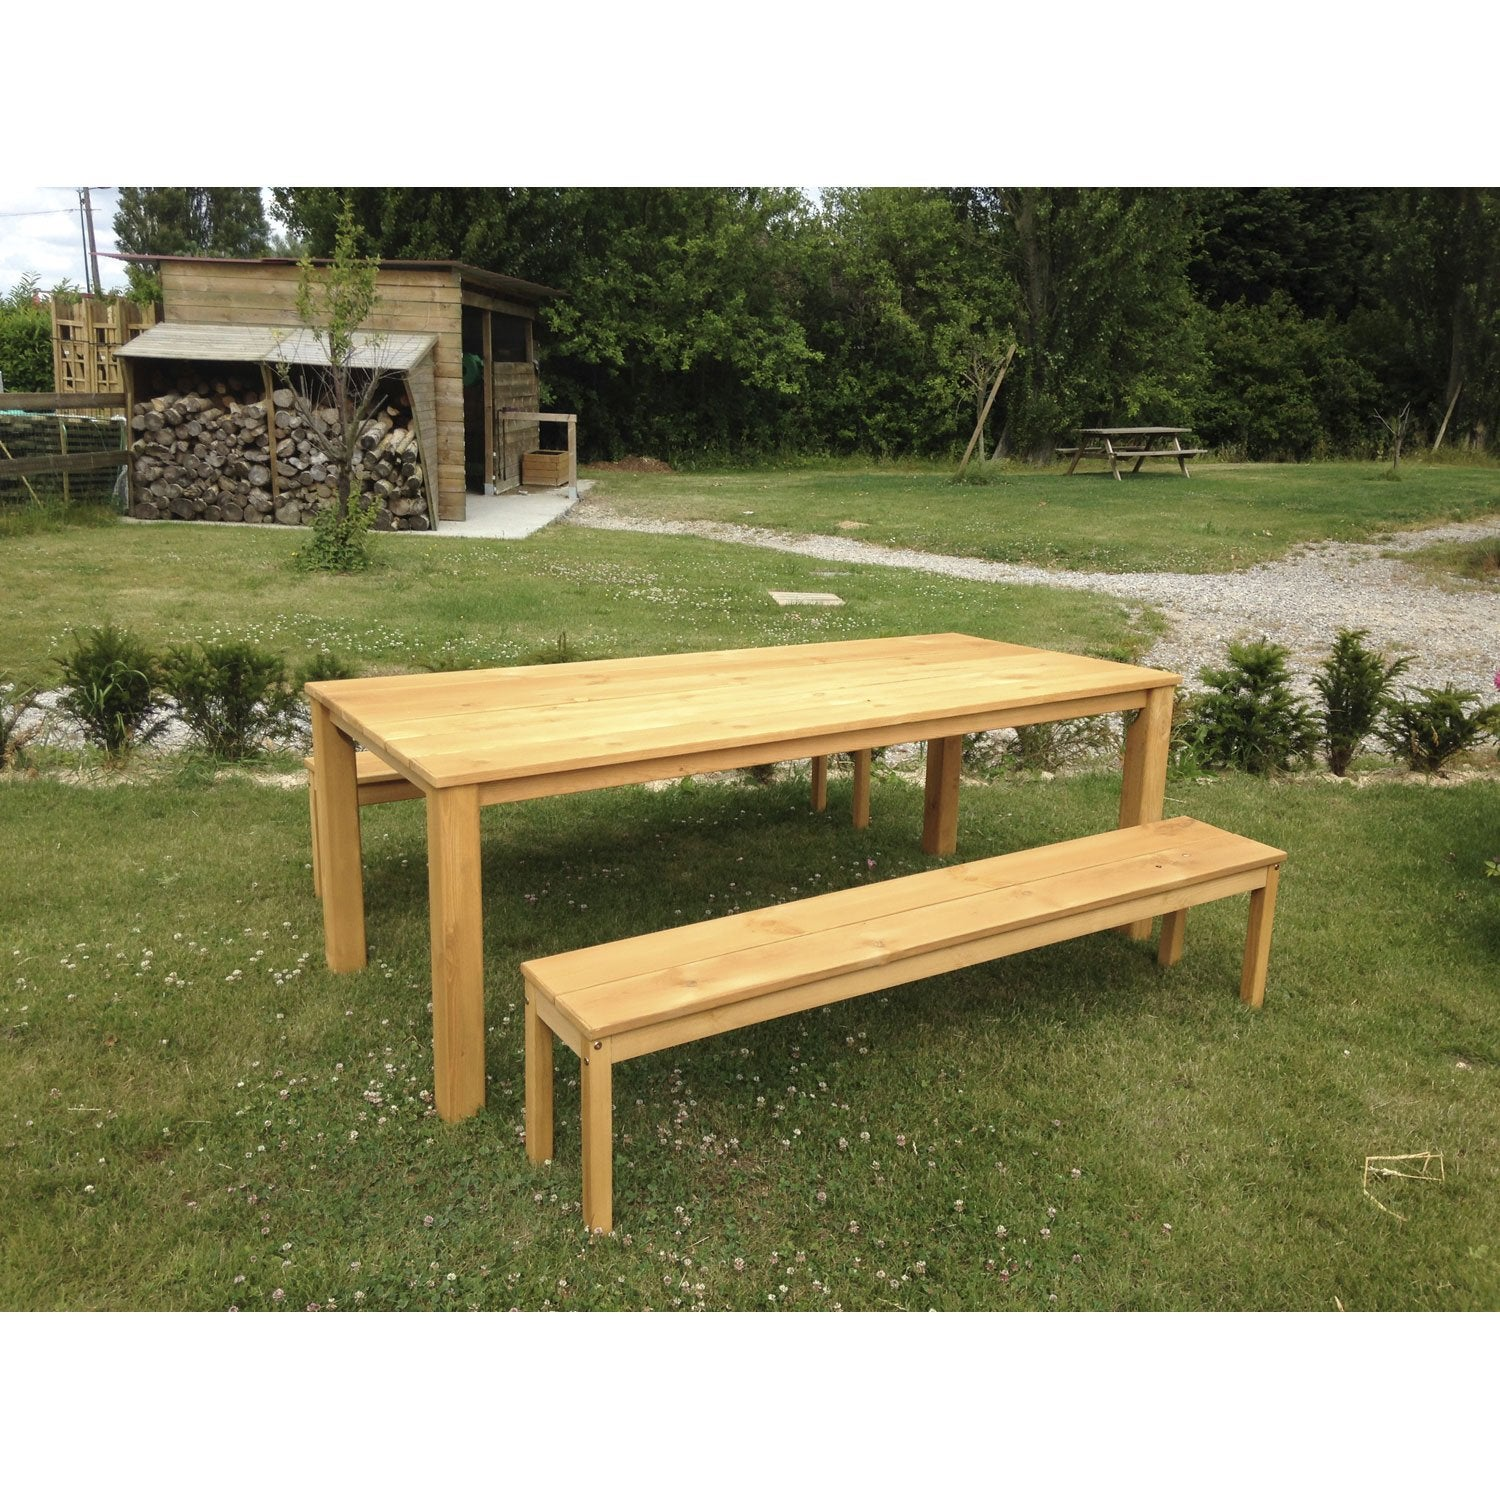 Salon de jardin set ferme bois ch ne vieilli 1 table 2 for Salon table de jardin